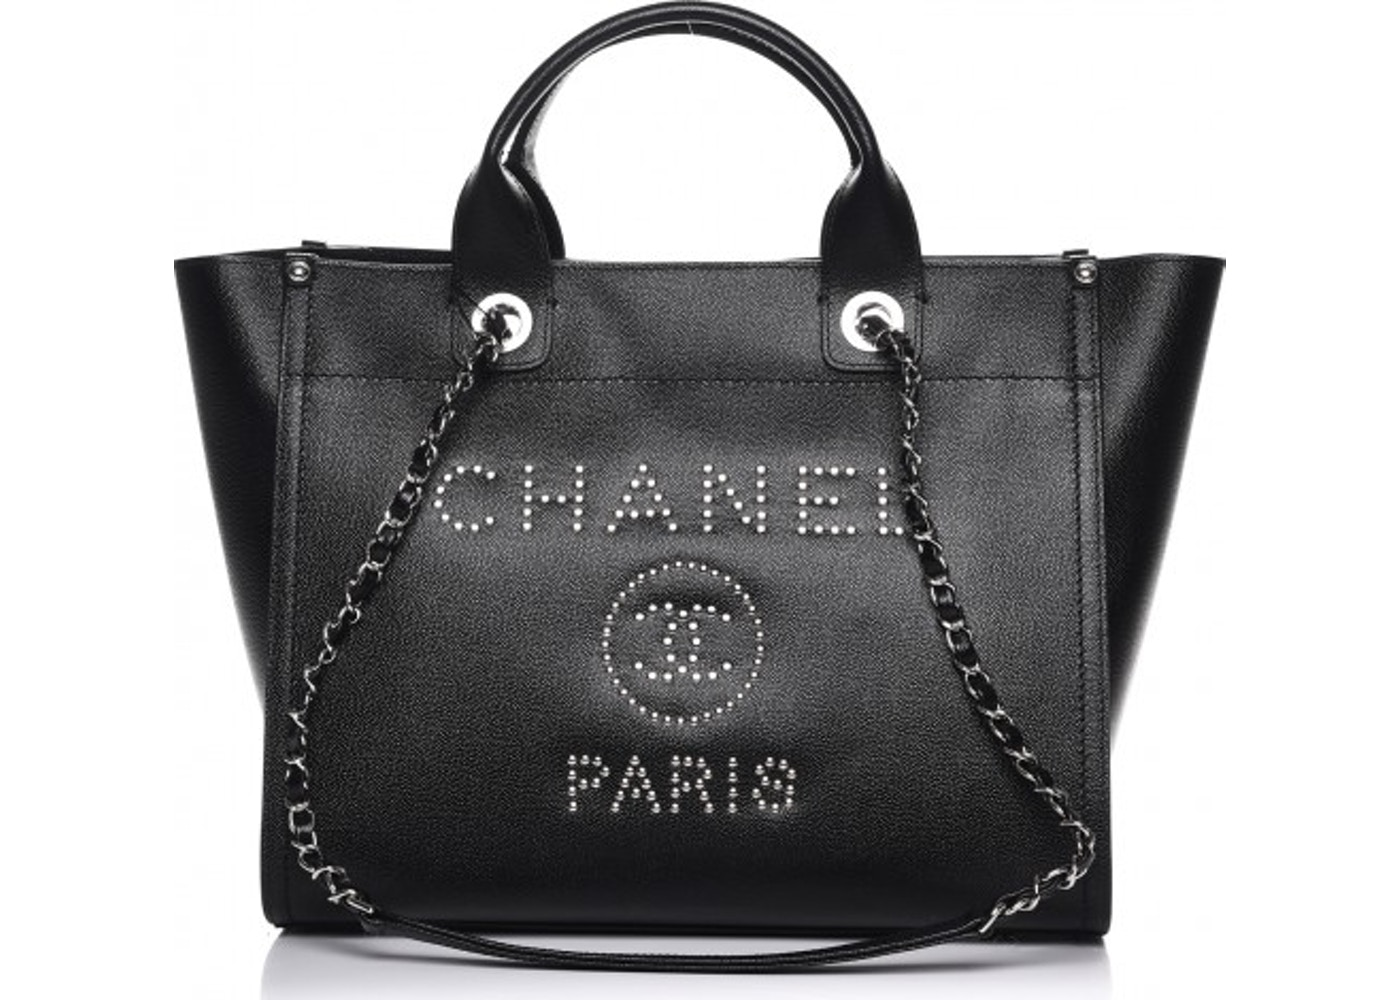 21fb9ebb2725 Chanel Deauville Tote Studded Small Black. Studded Small Black